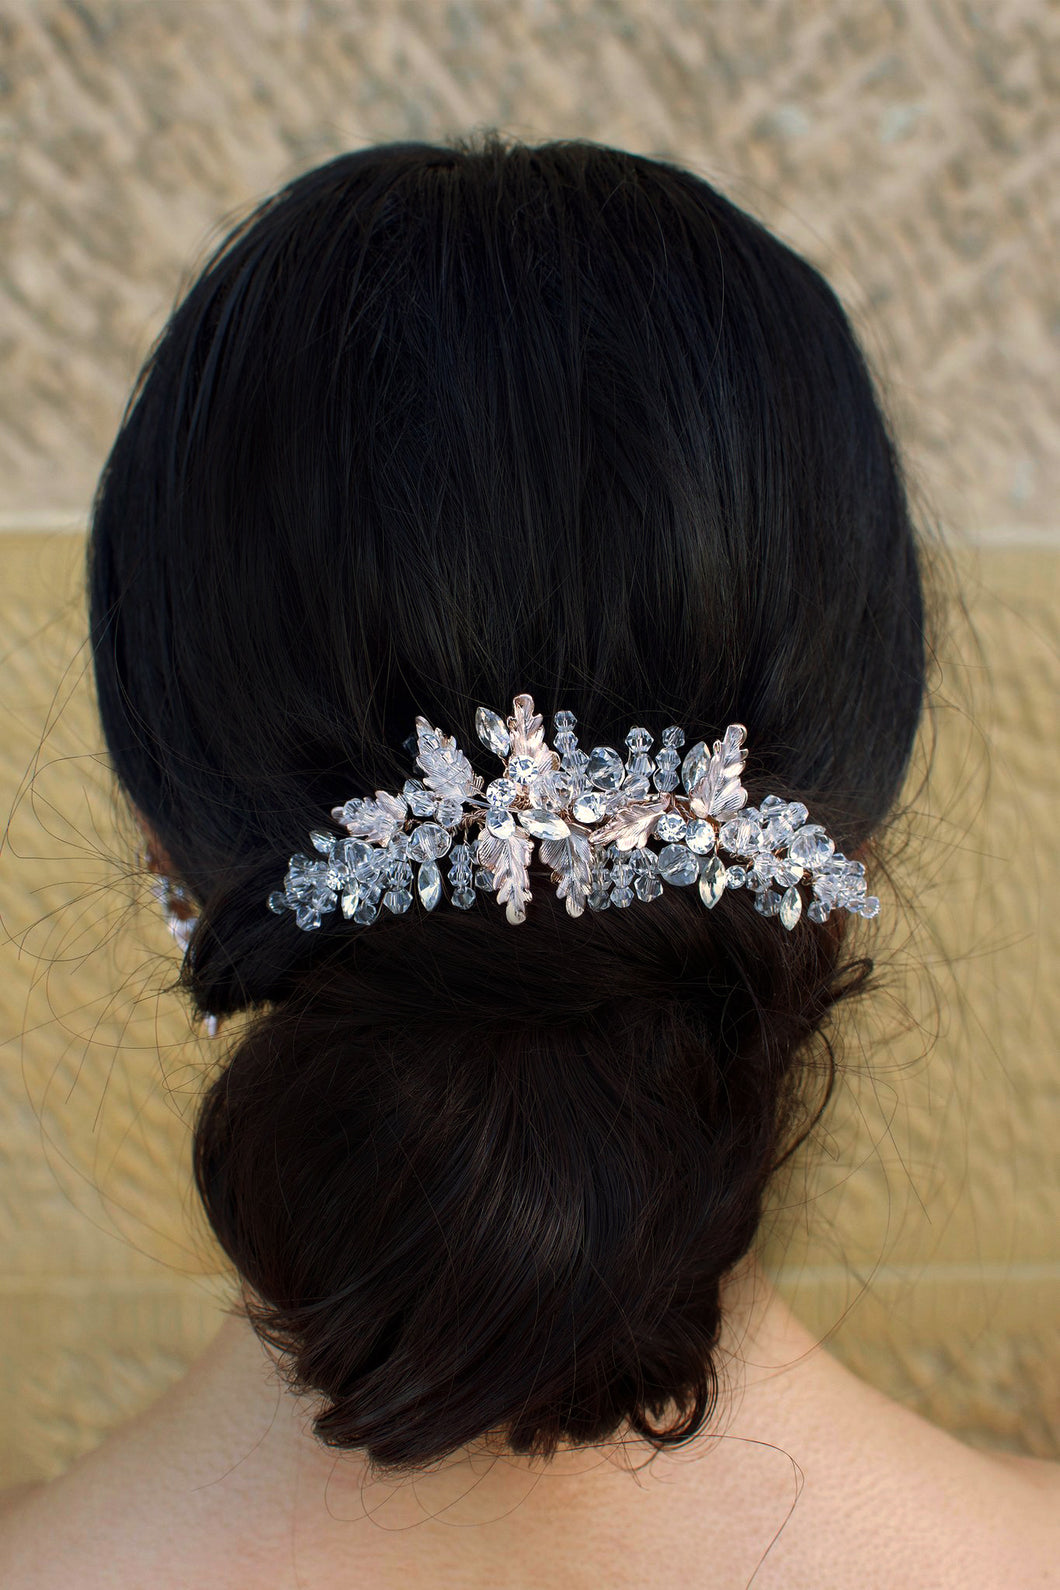 Crystals and Rose Gold clip worn on black hair at the back of a model's head with metal leaves.